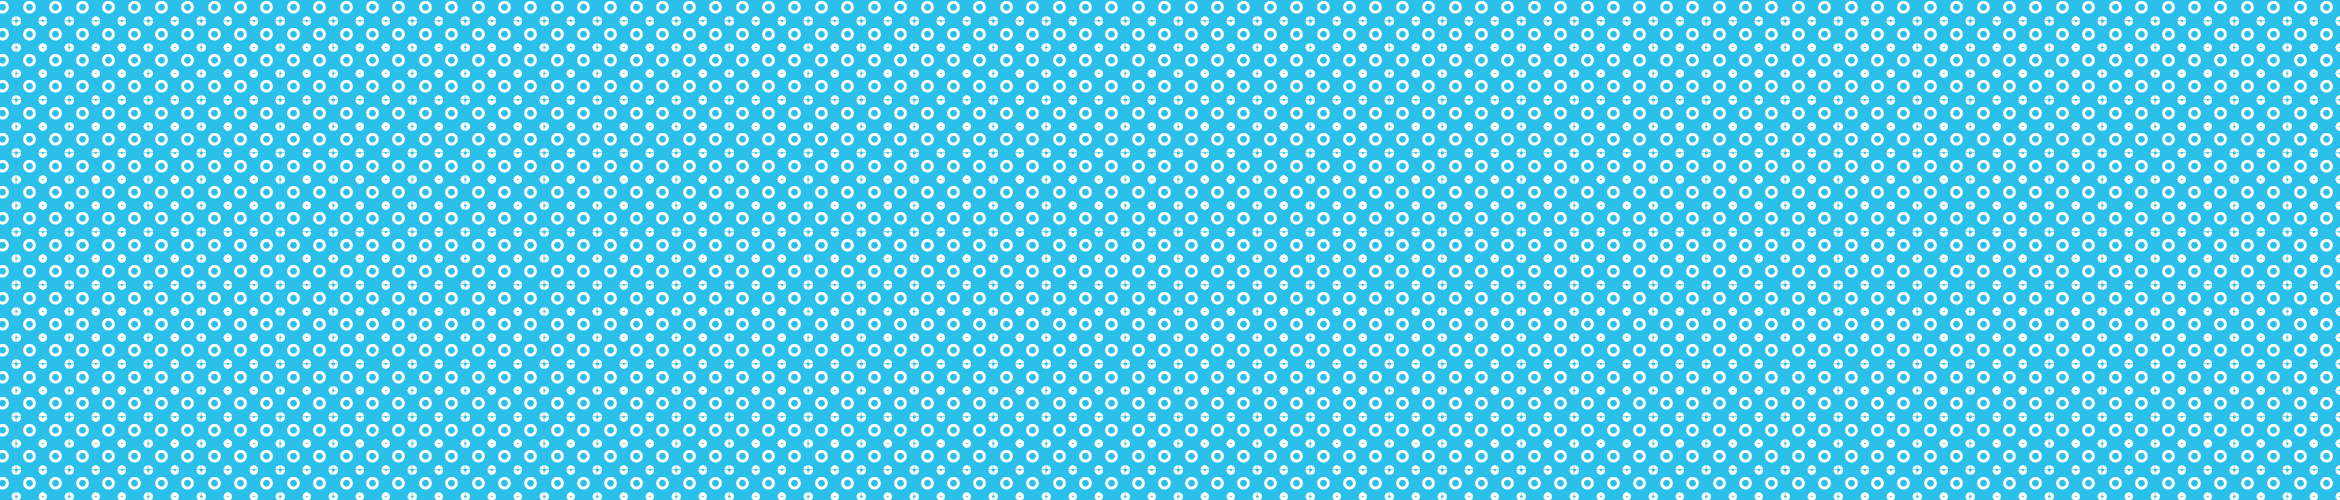 Dot pattern created as part of the International Institute for Sustainable Development brand and used as an illustrative texture.